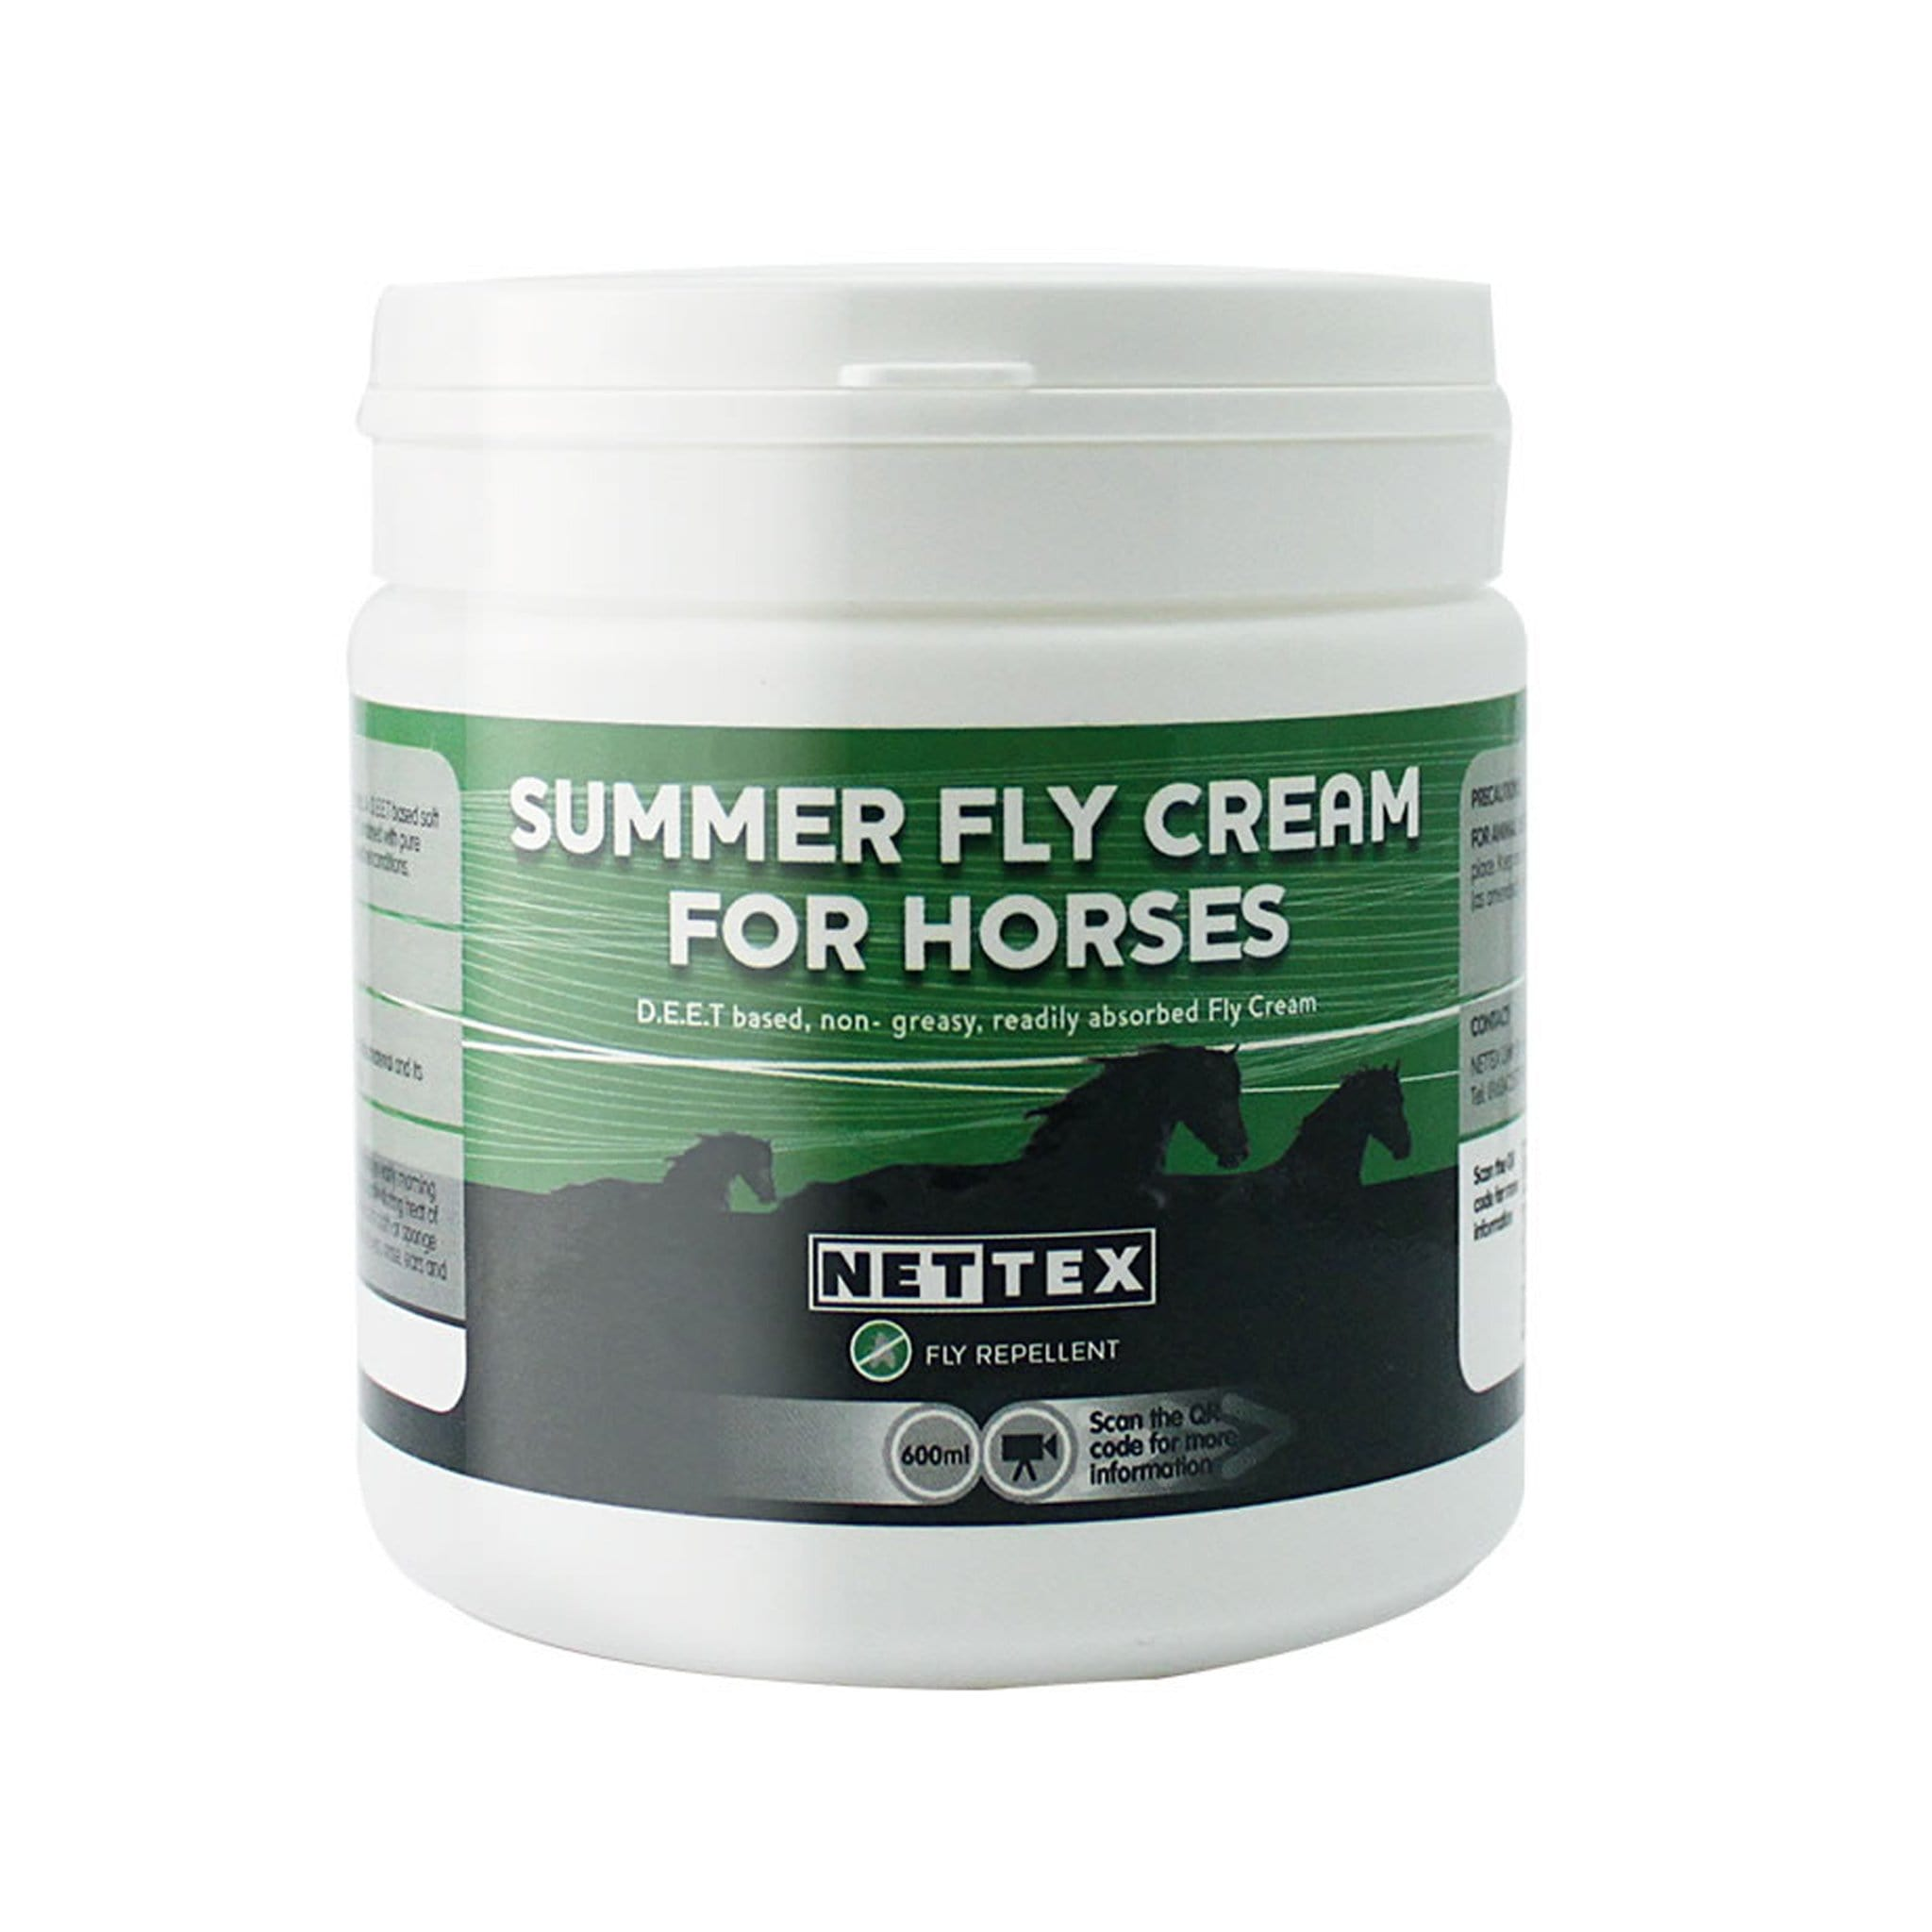 Nettex Equine Summer Fly Cream 600ML NET0075.